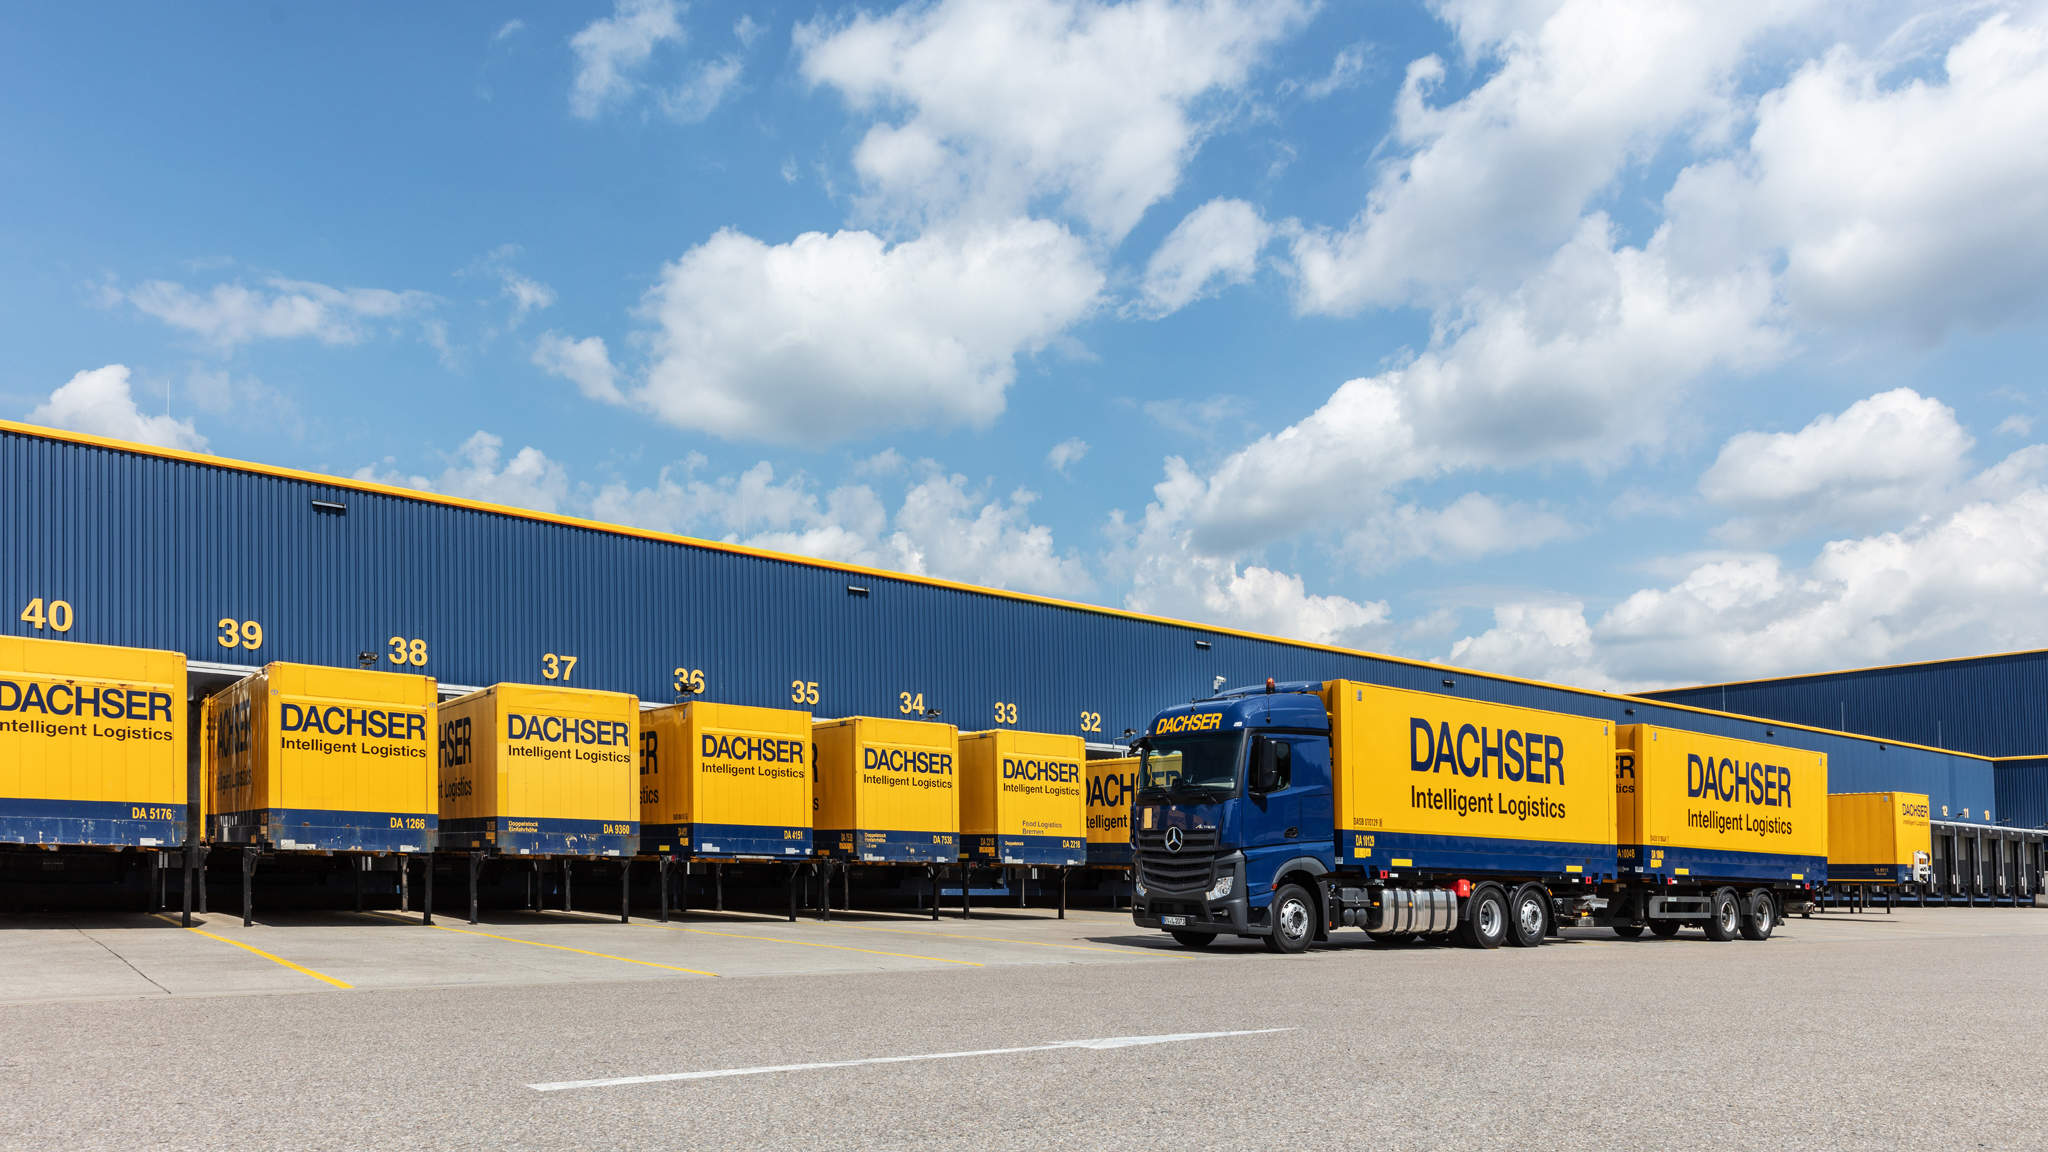 DACHSER invests in its logistics centre in Nuremberg